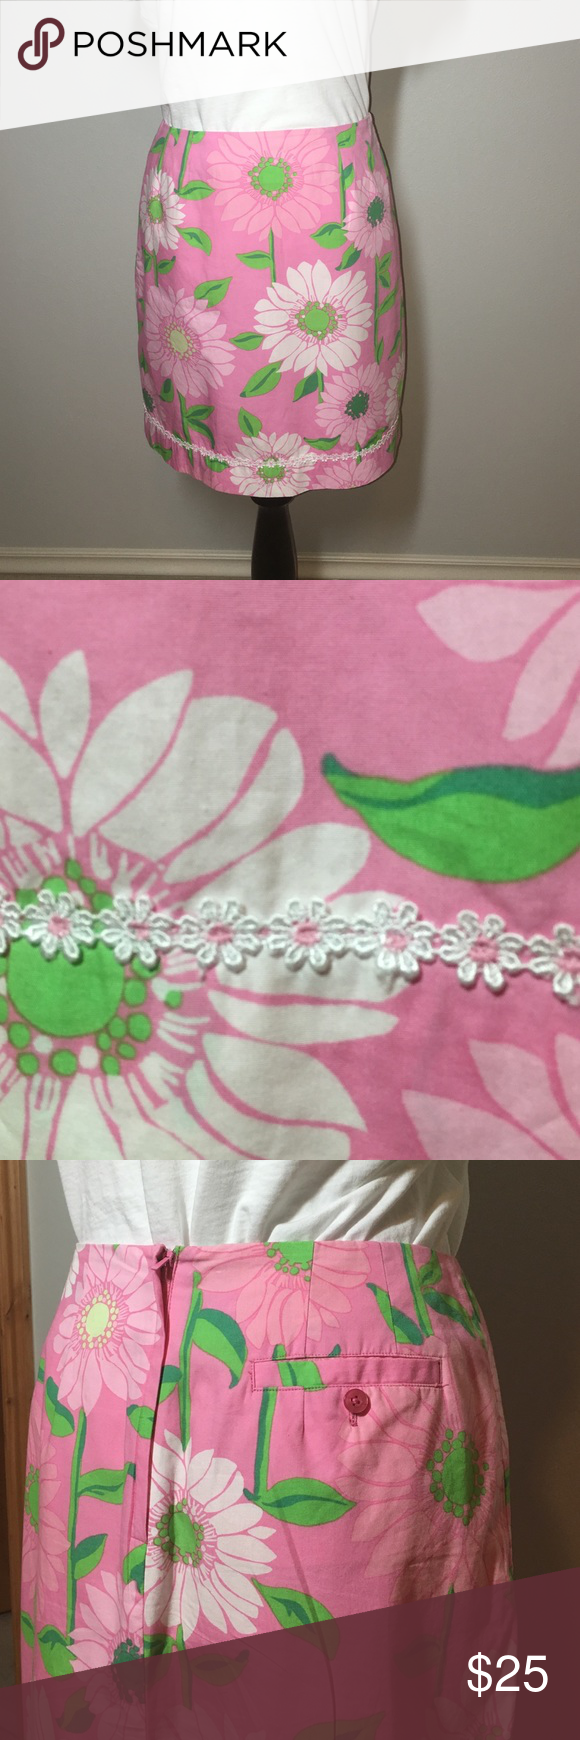 LILLY PULITZER Skirt 🌴 Lovely lined skirt! Button and zip closure. Back pocket. Flower lace along straight hem. 100% Cotton outer. Pink with white and pink flowers. Green leaves. Excellent. Smoke & pet-free! Length: 19 in. Waist: 30 in. Lilly Pulitzer Skirts Mini